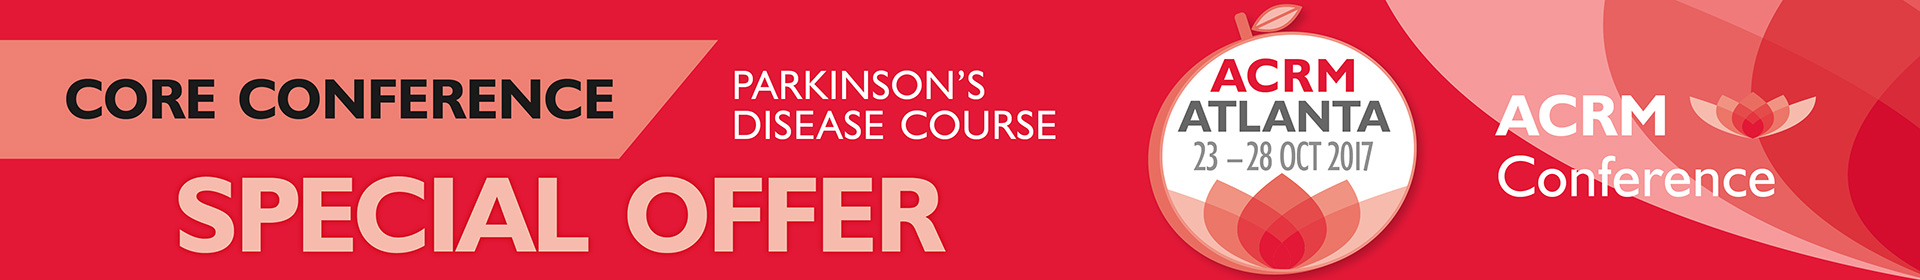 Parkinsons Disease Course SPECIAL OFFER